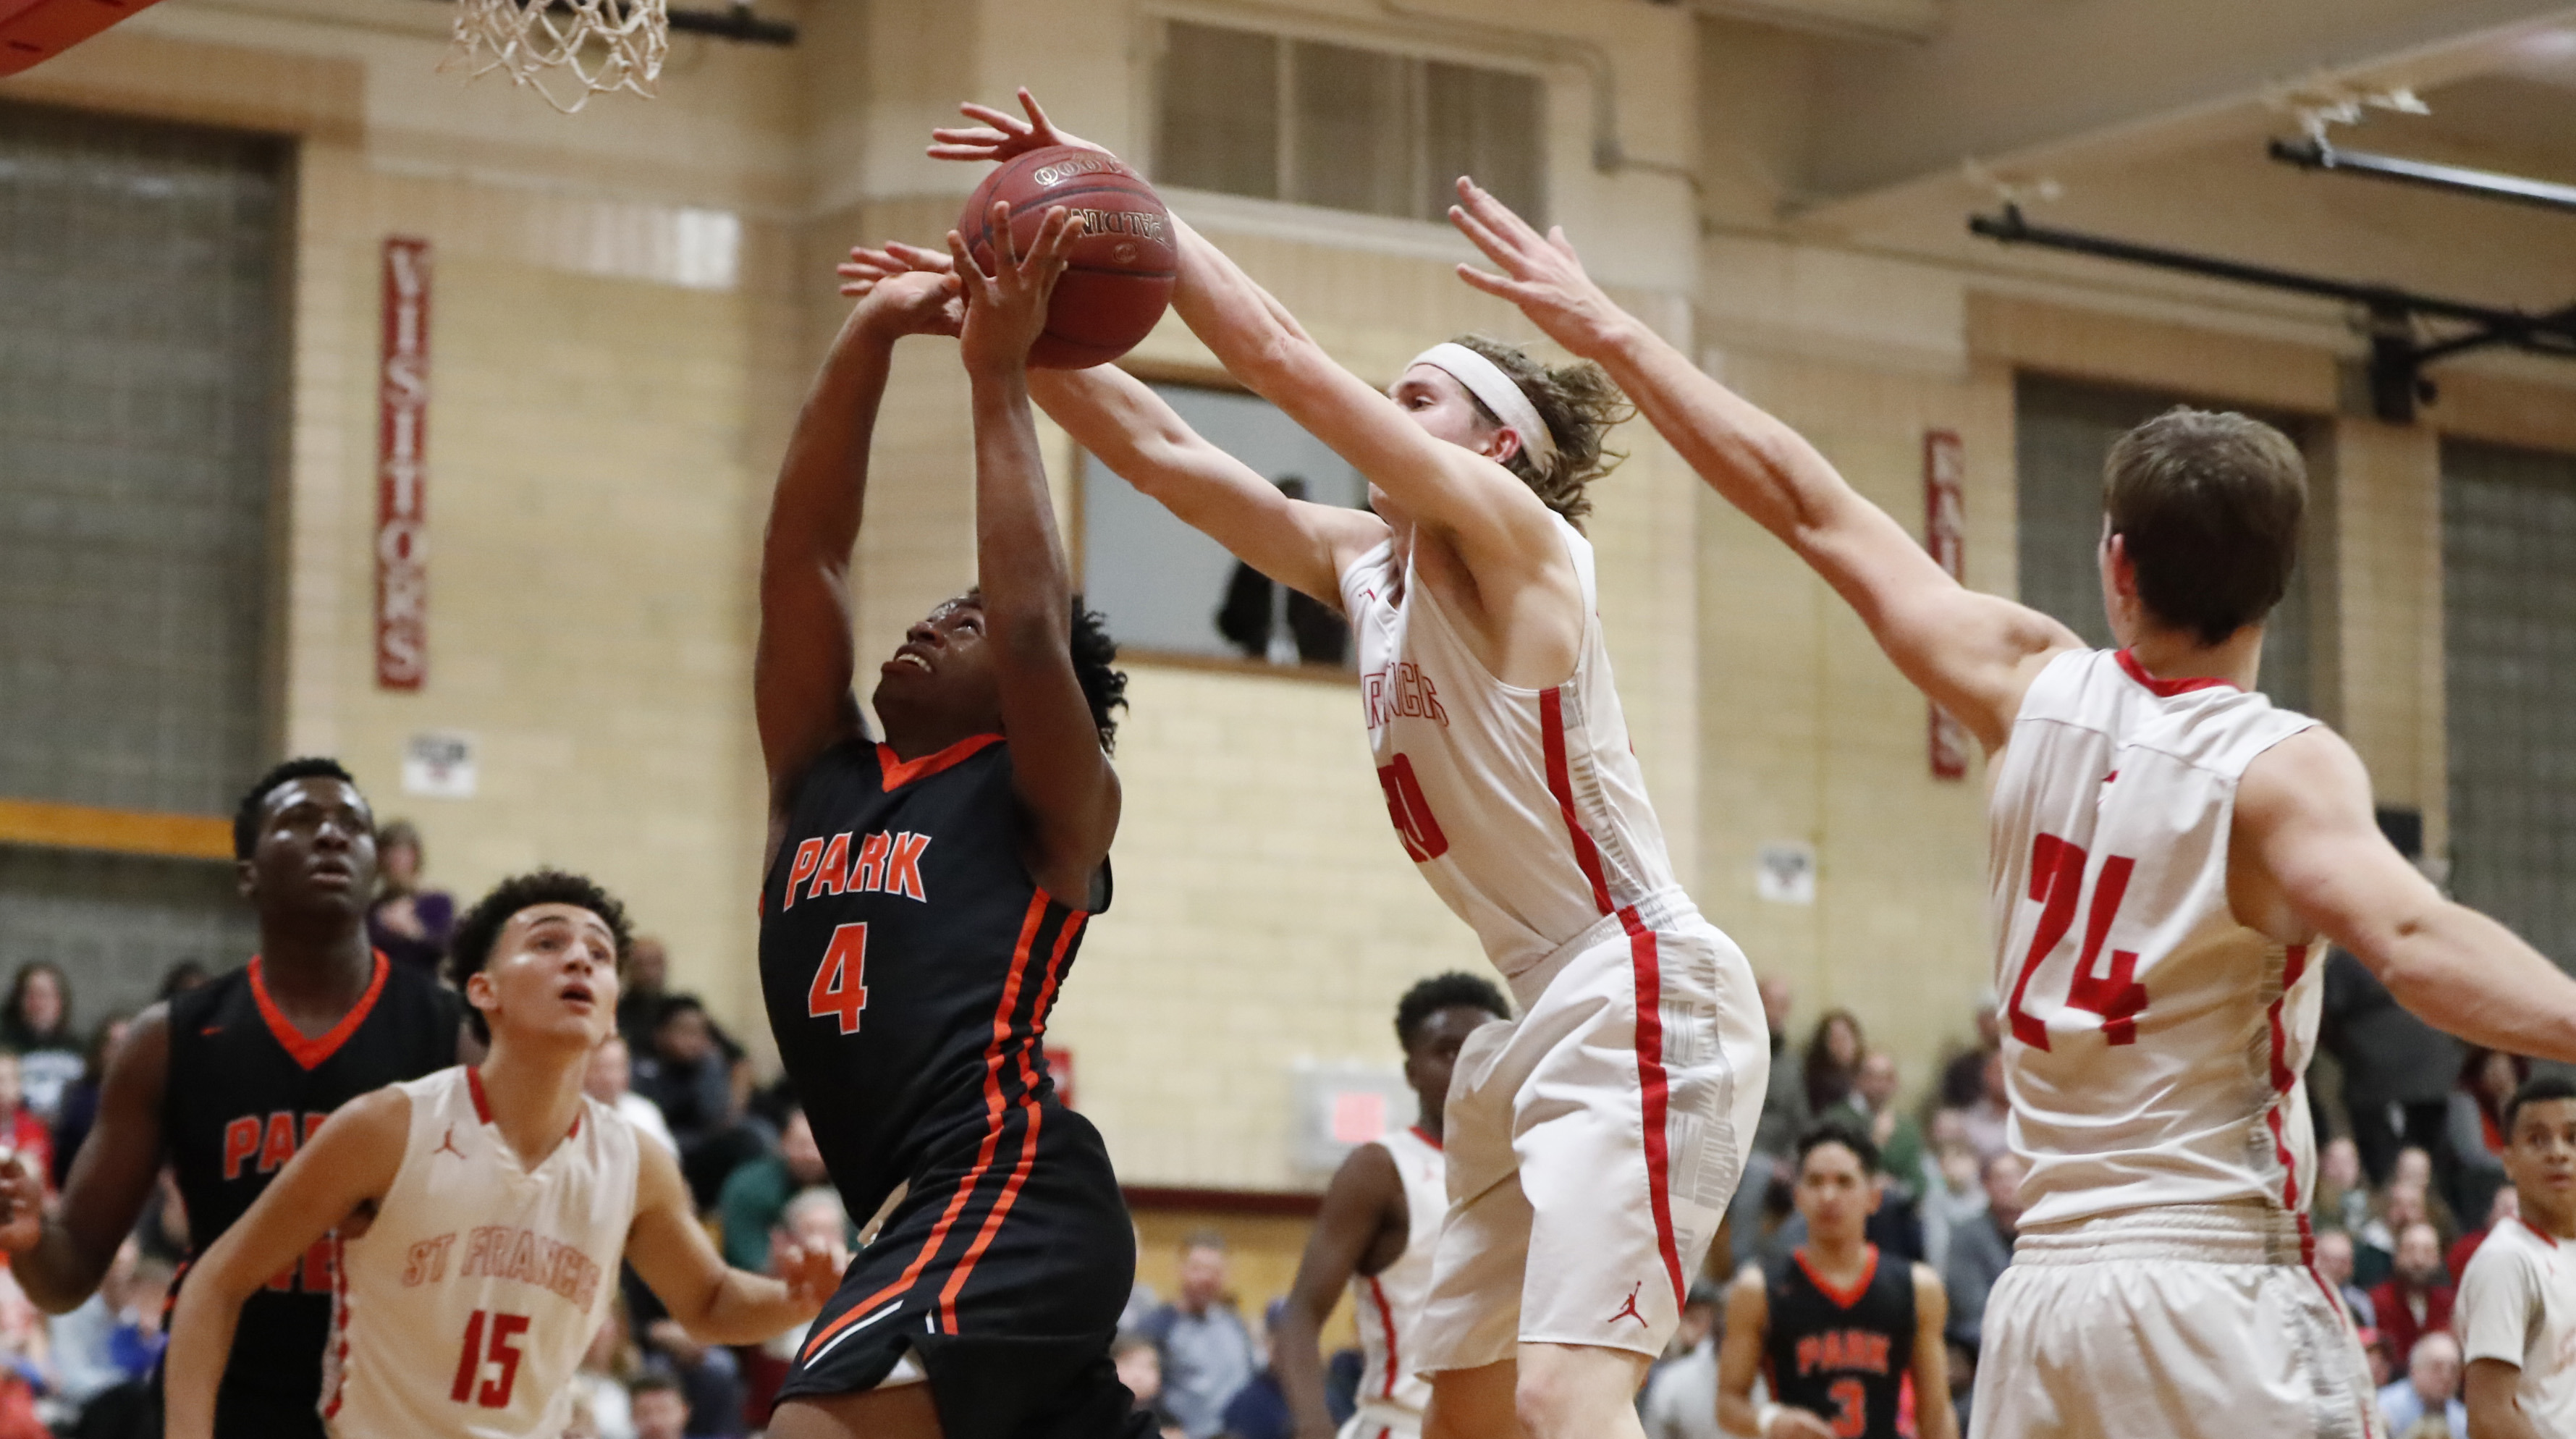 Park's Daniel Scott has the ball stripped by St. Francis Bo Sireika during first half action at St. Francis on Friday. (Harry Scull Jr./Buffalo News)